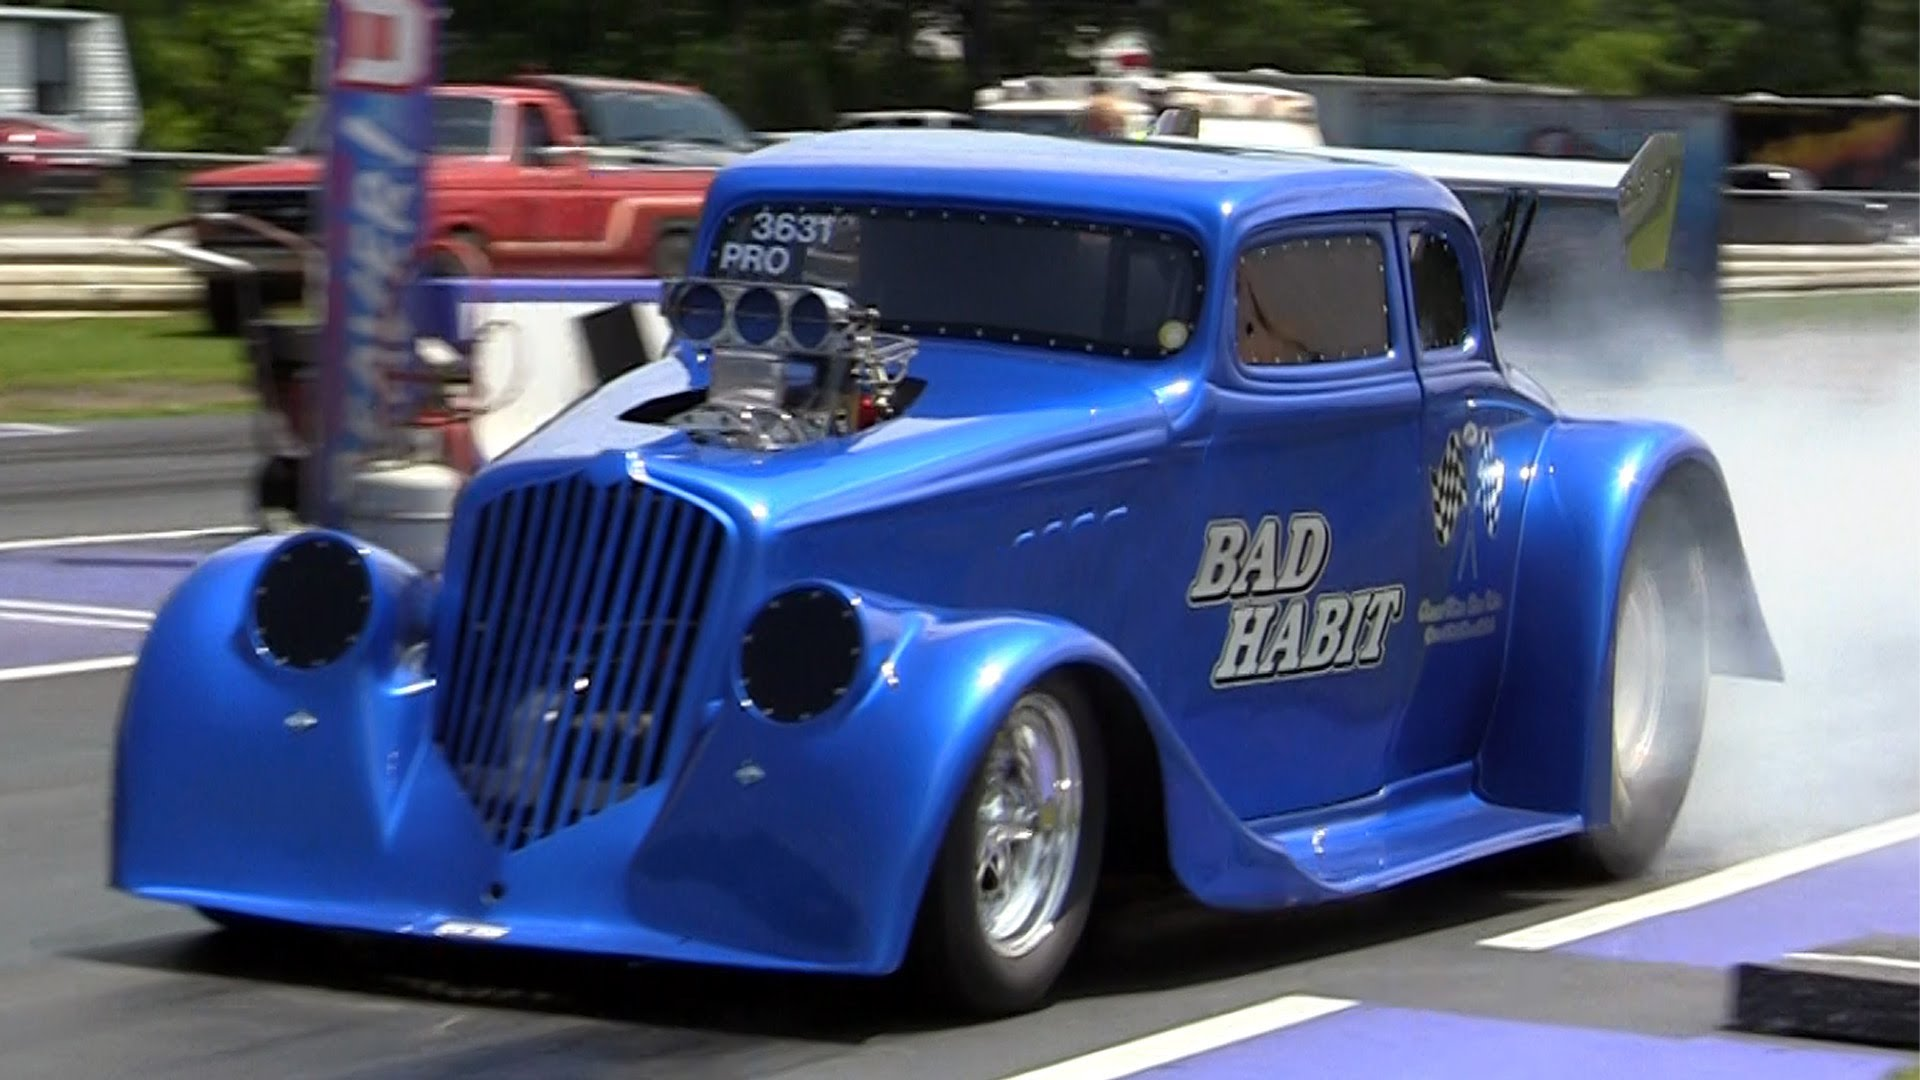 This Nostalgia Drag Racing At The Gasser Reunion Hot Rod Gasser ...